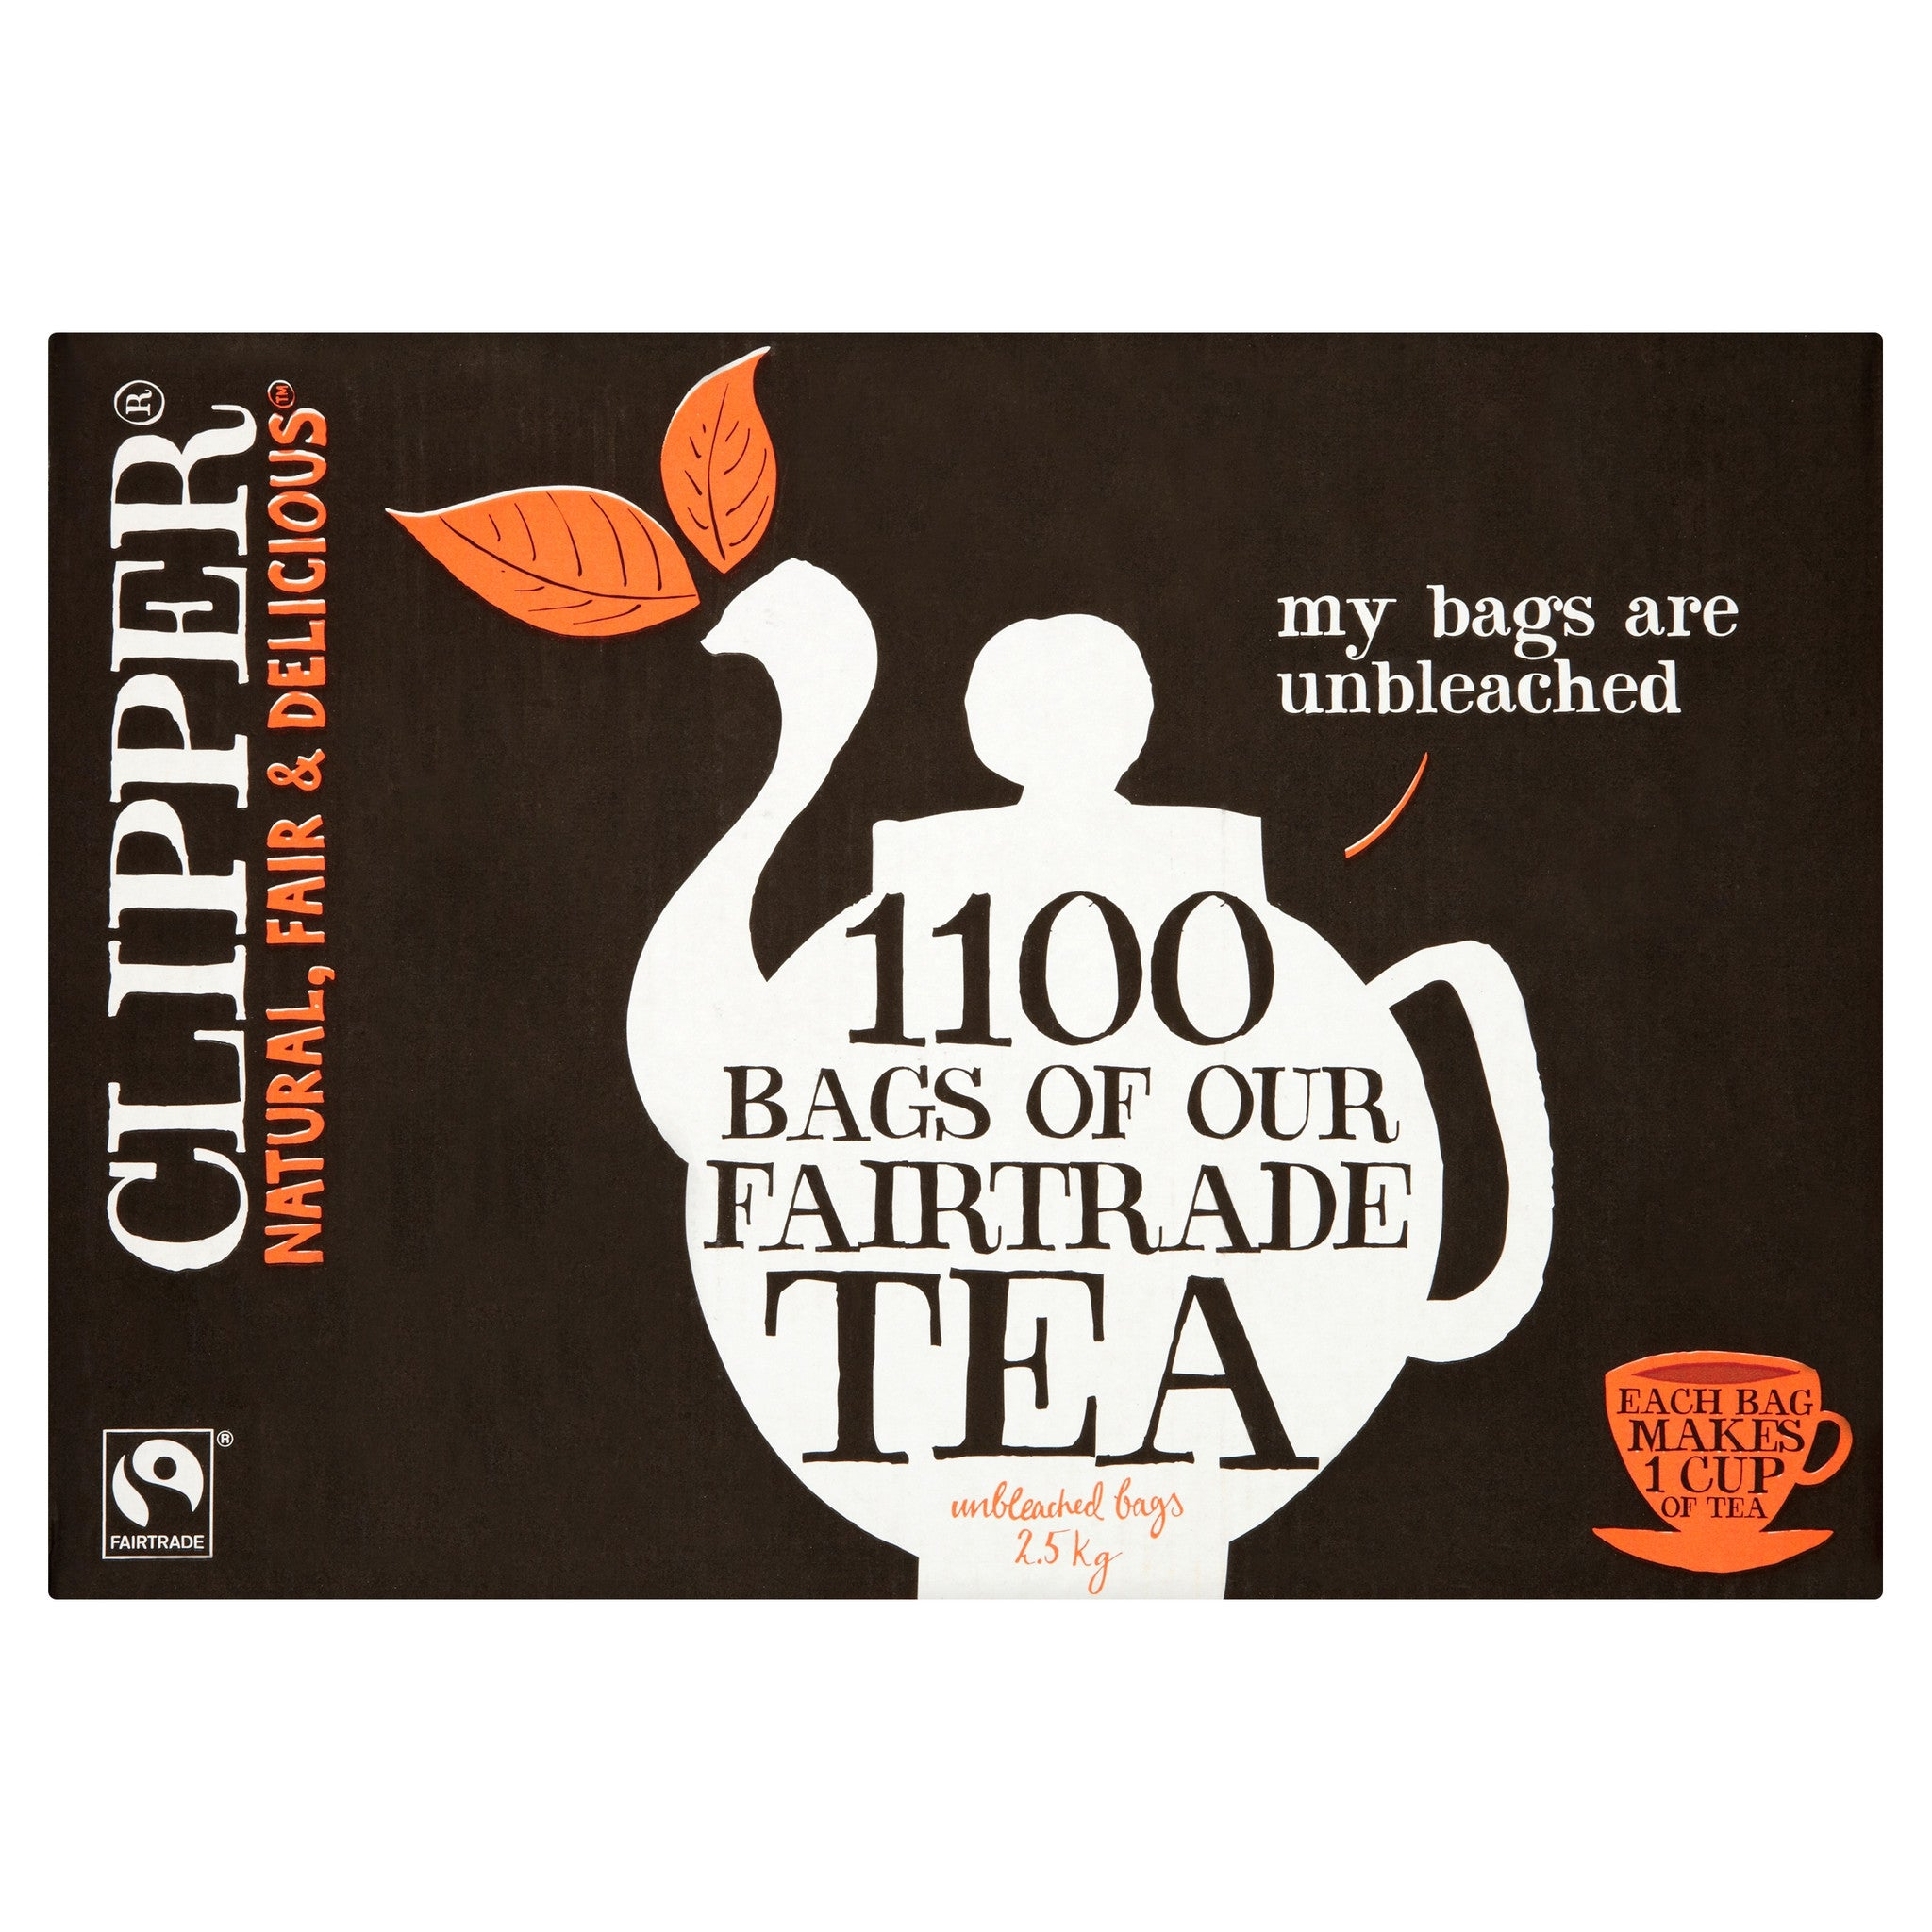 Fairtrade Tea 1100 bags